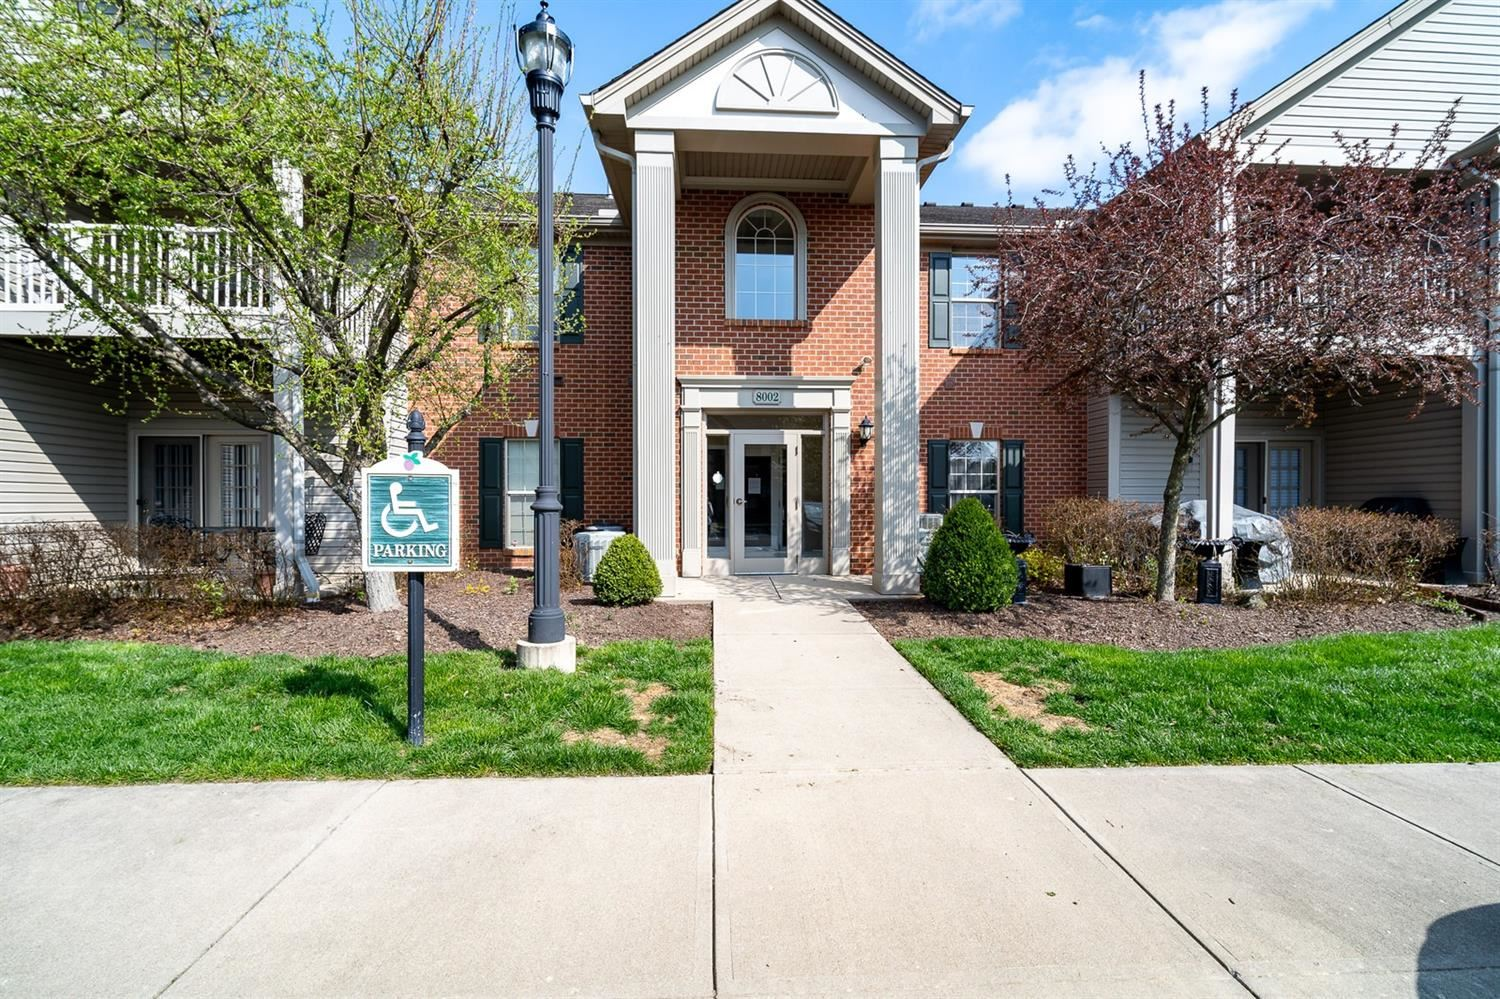 8002 Pinnacle Point Drive #202, West Chester, OH 45069 - #: 1657409